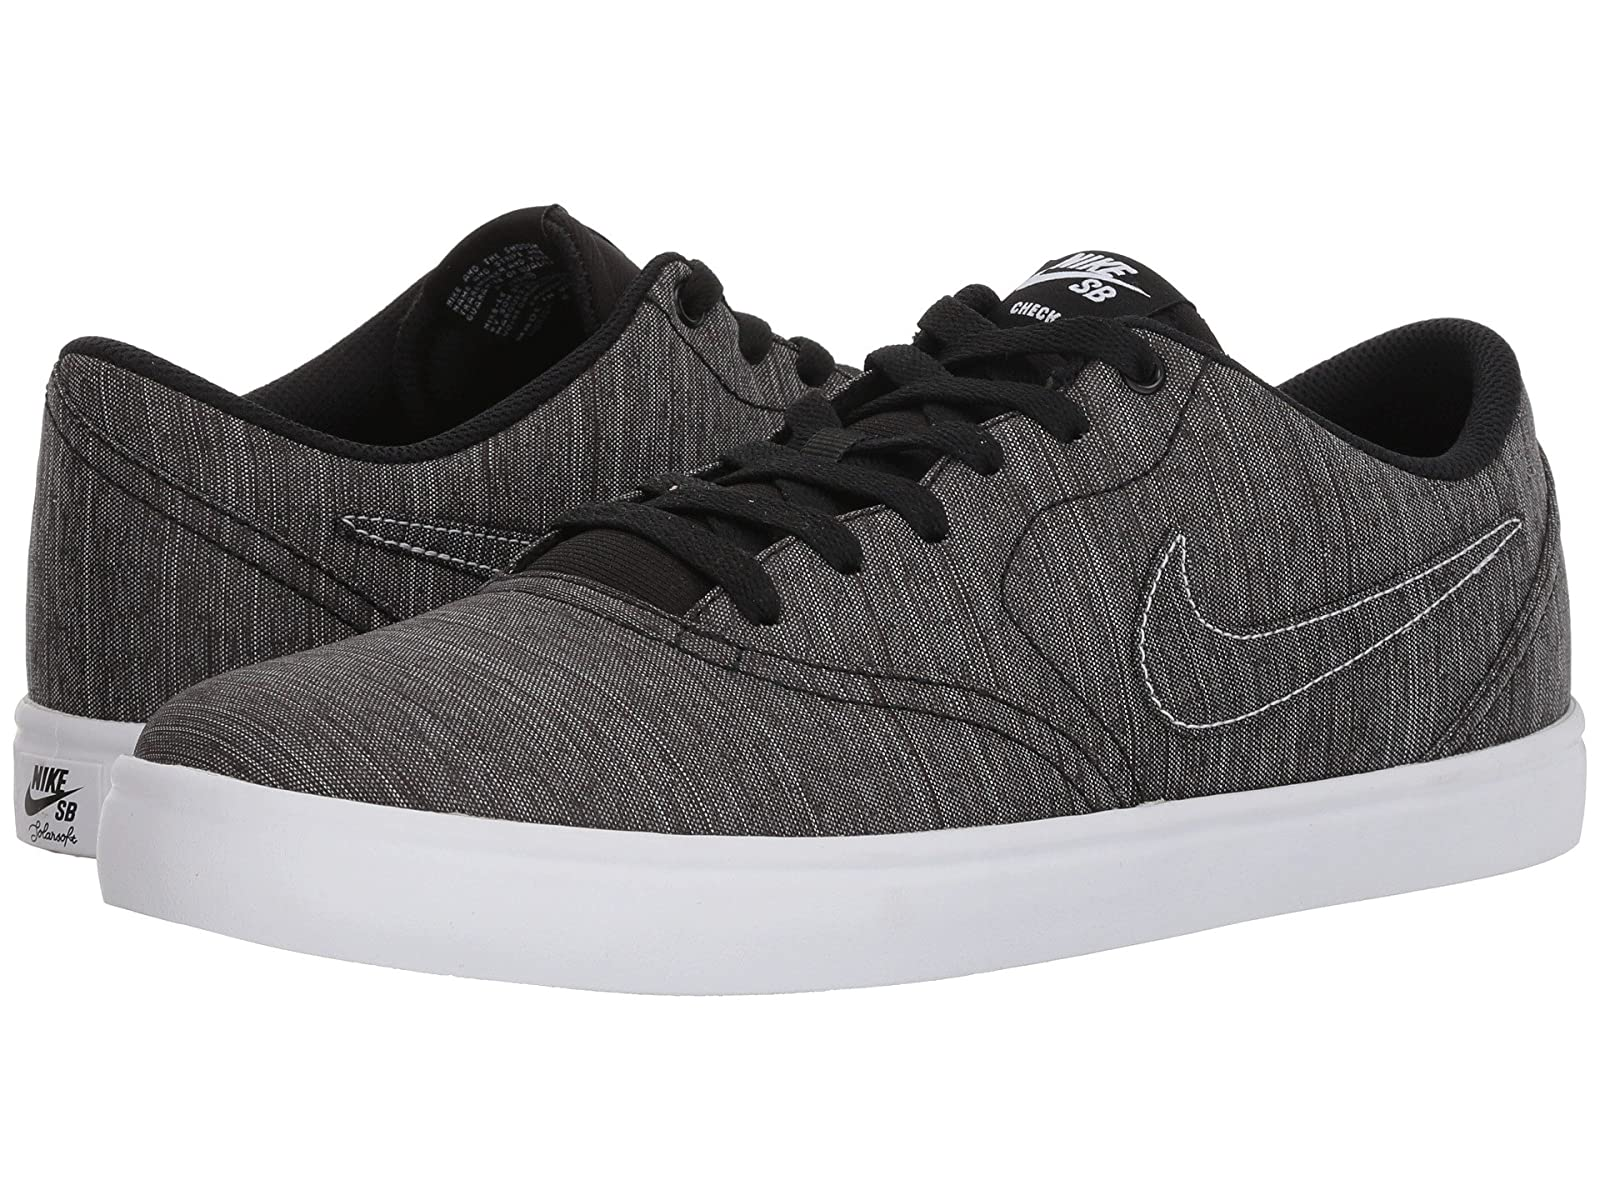 Nike SB Check Solar Canvas PremiumAtmospheric grades have affordable shoes